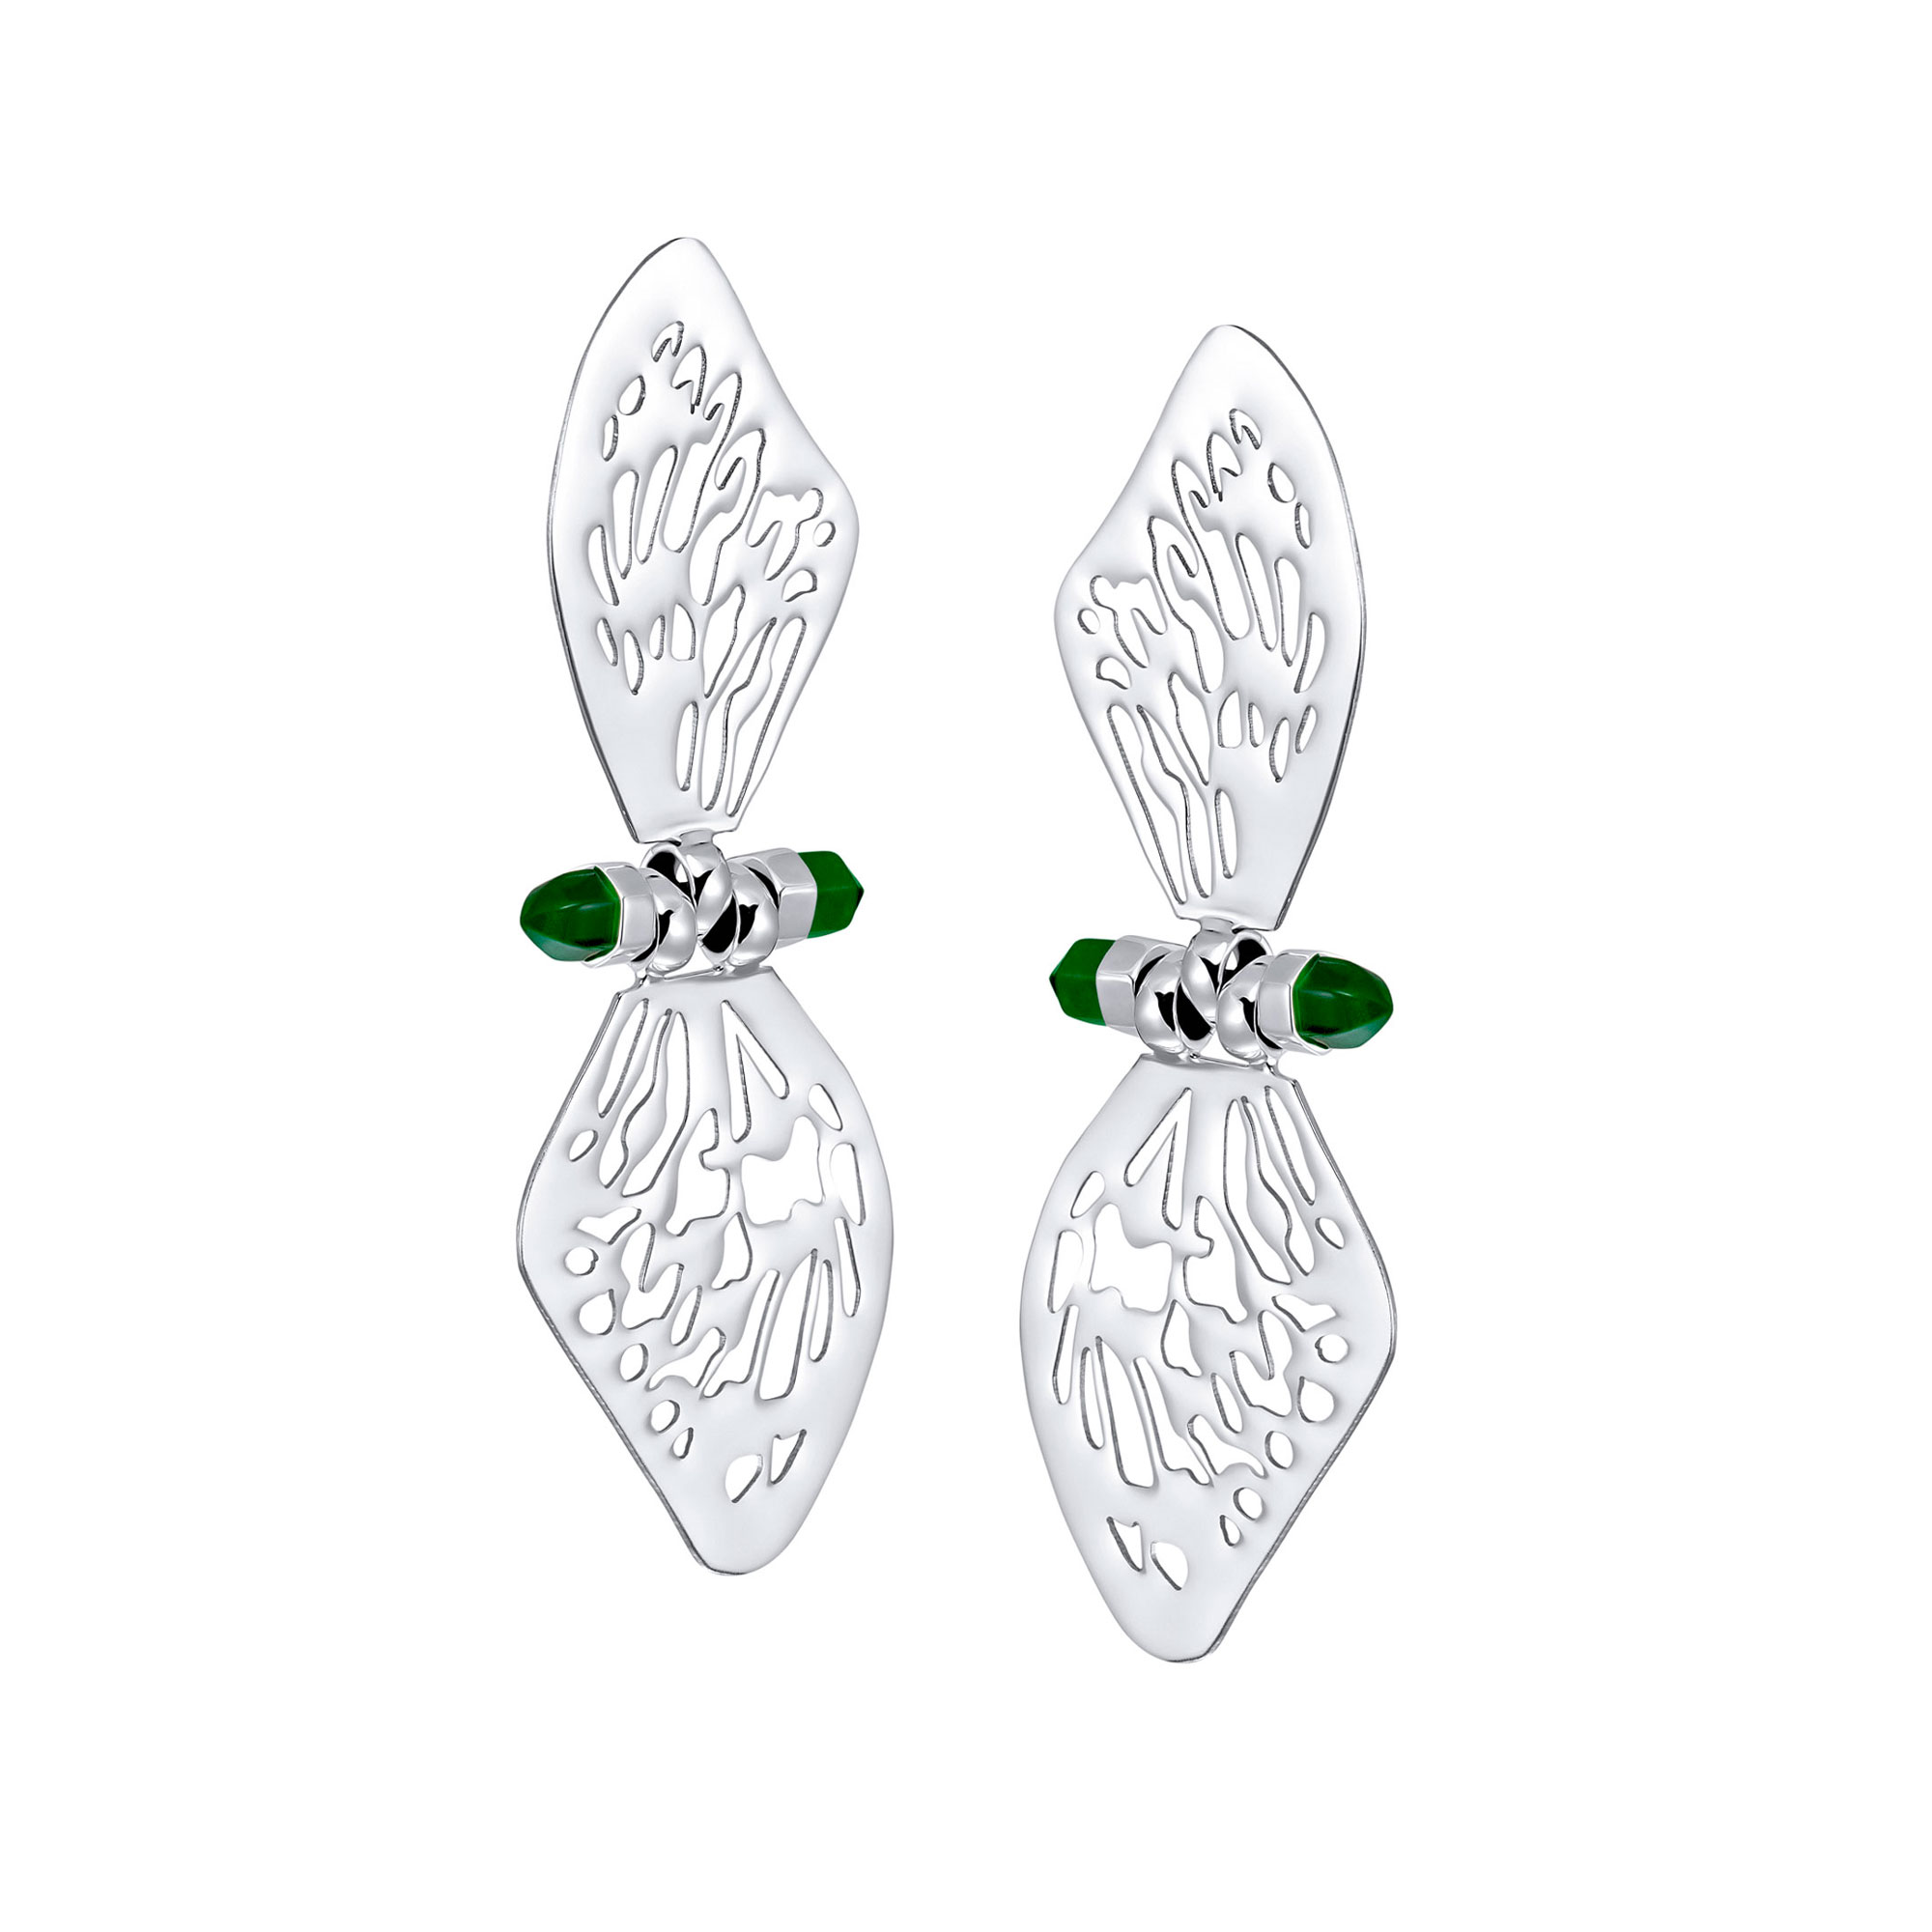 GLASSWING EARRINGS